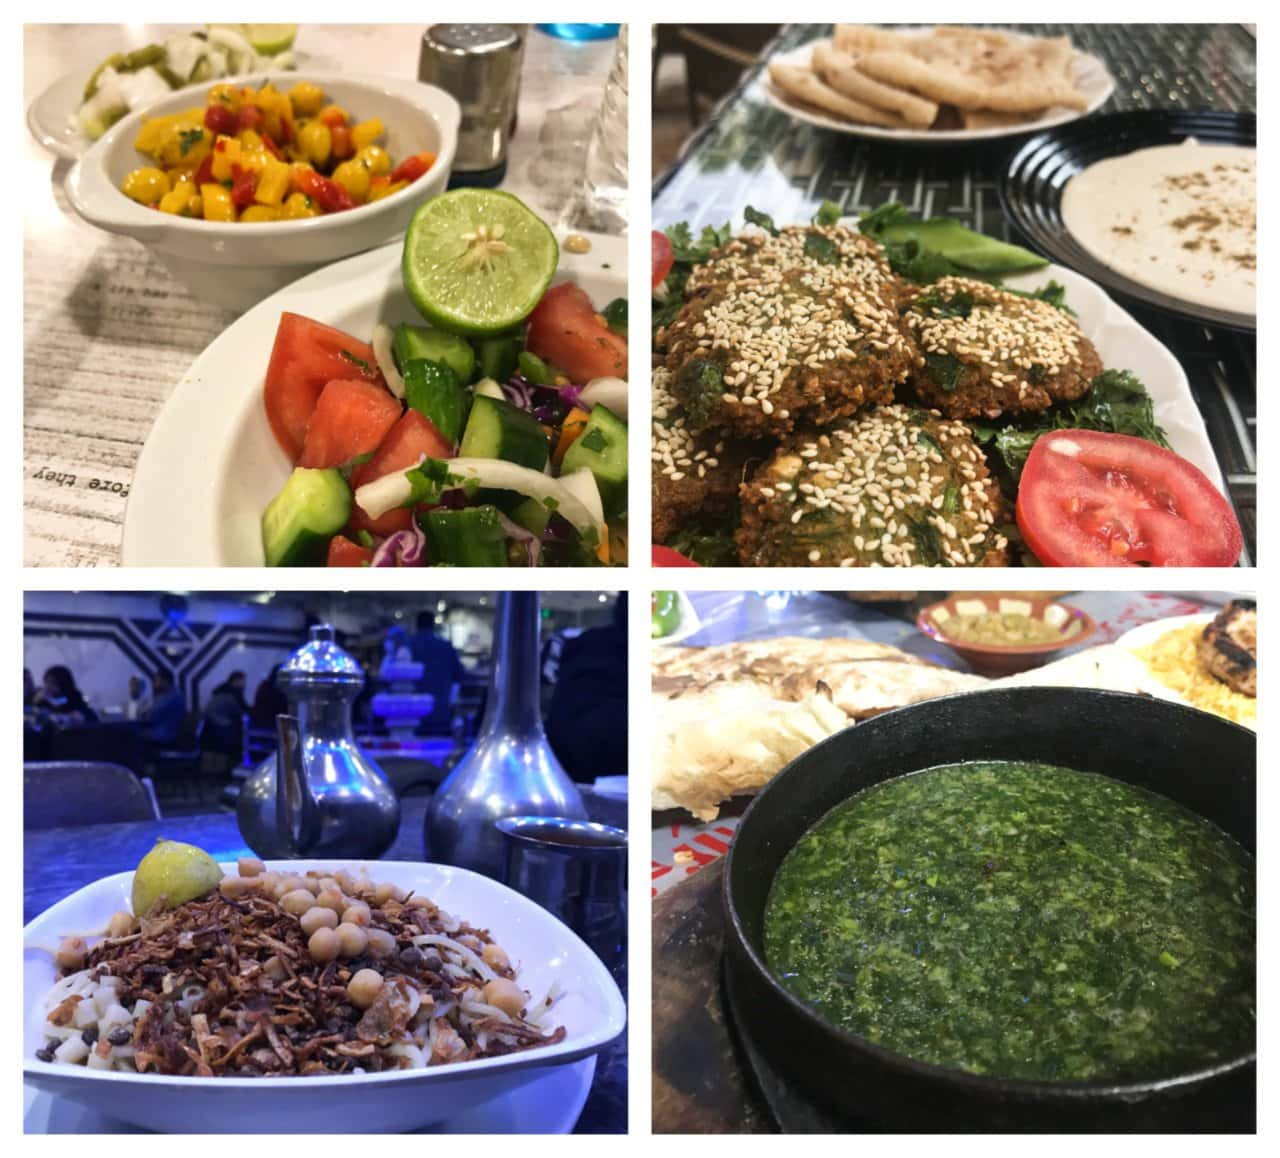 Food in Egypt - Experiencing the Globe